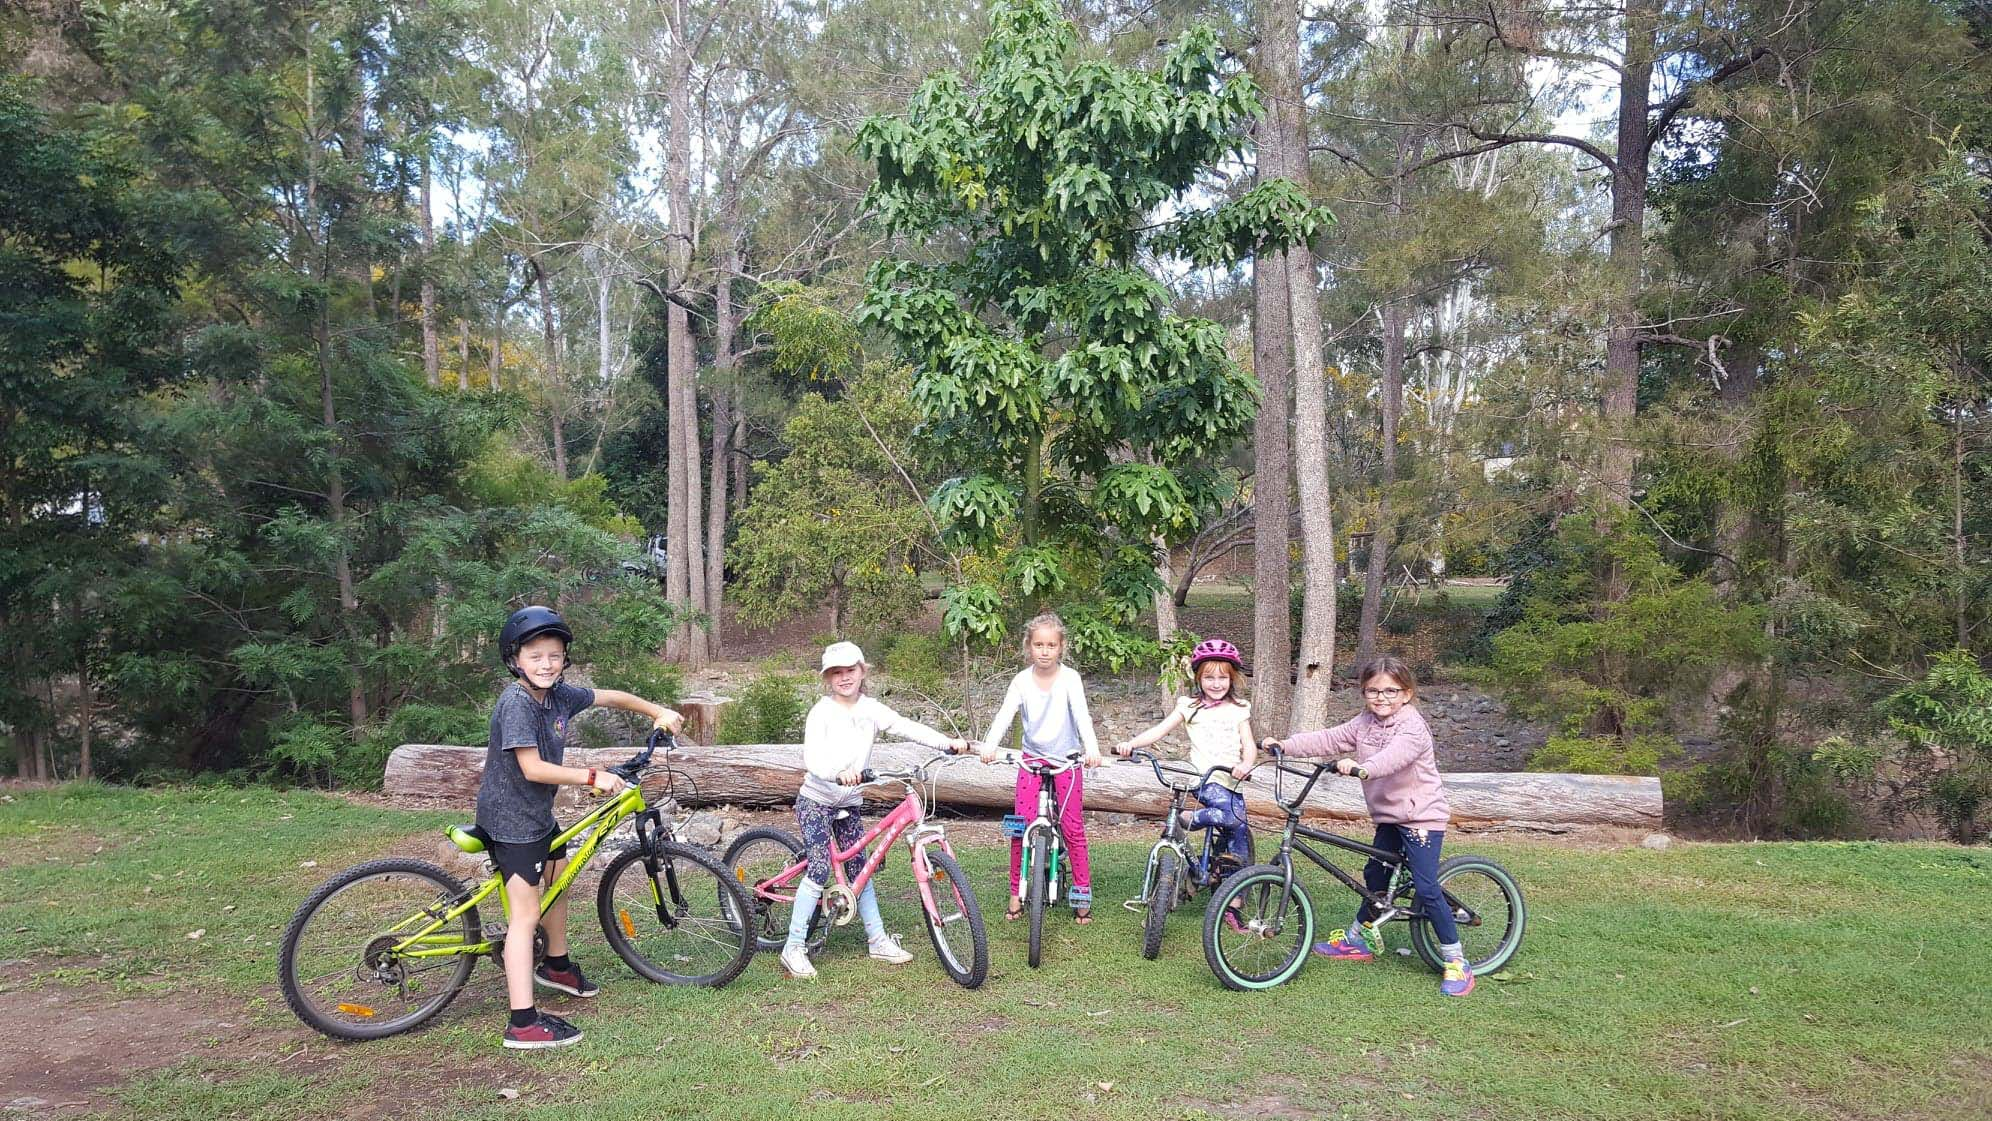 Five young kids on their bikes